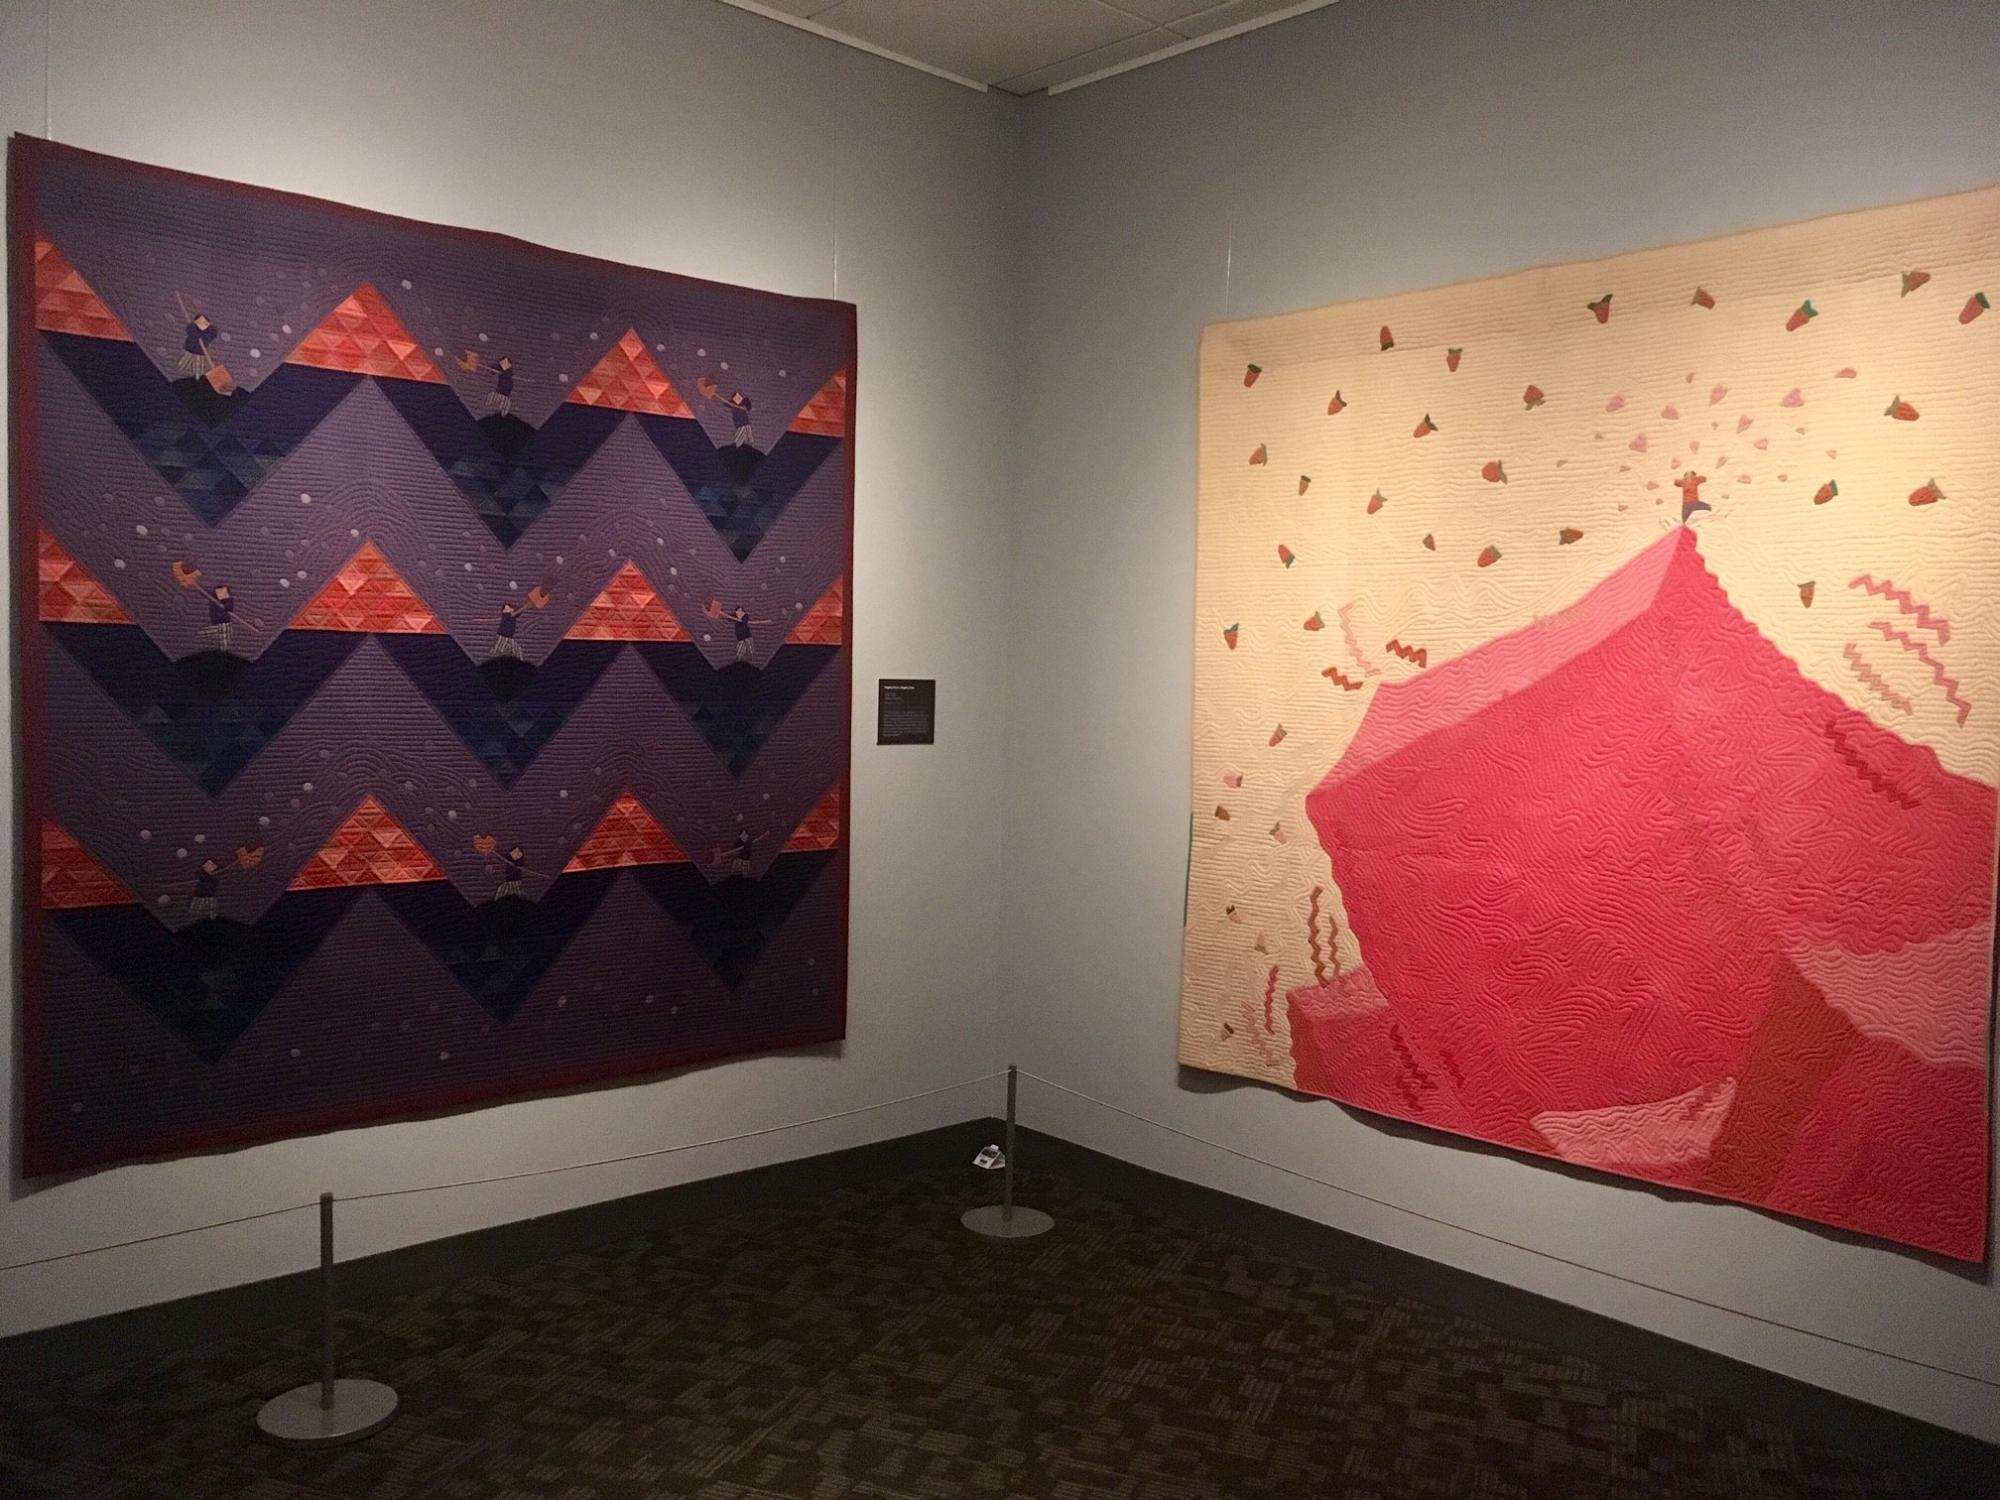 Two Rumi O'Brien quilts on display in a gallery.